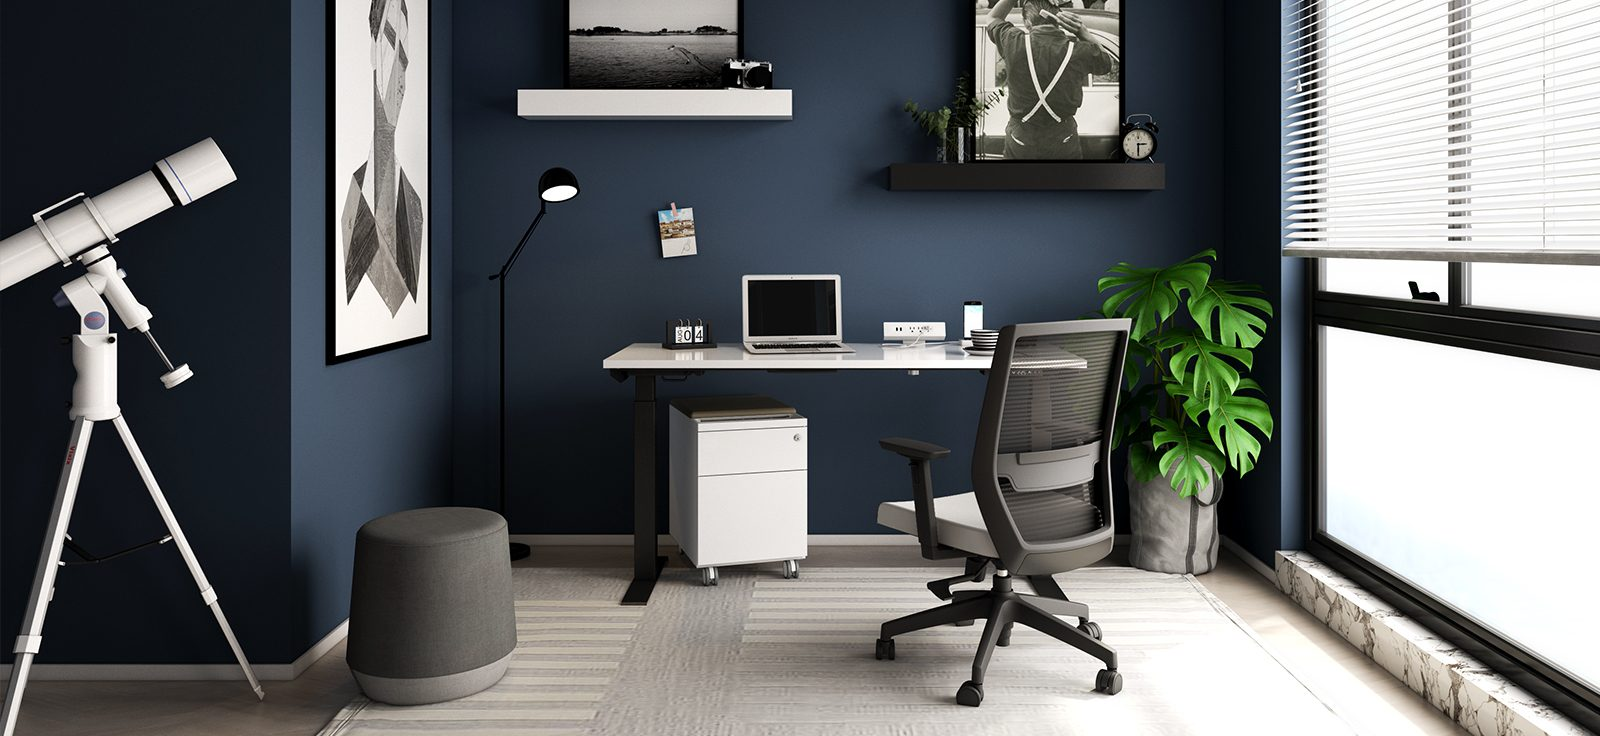 Home Office - Friant